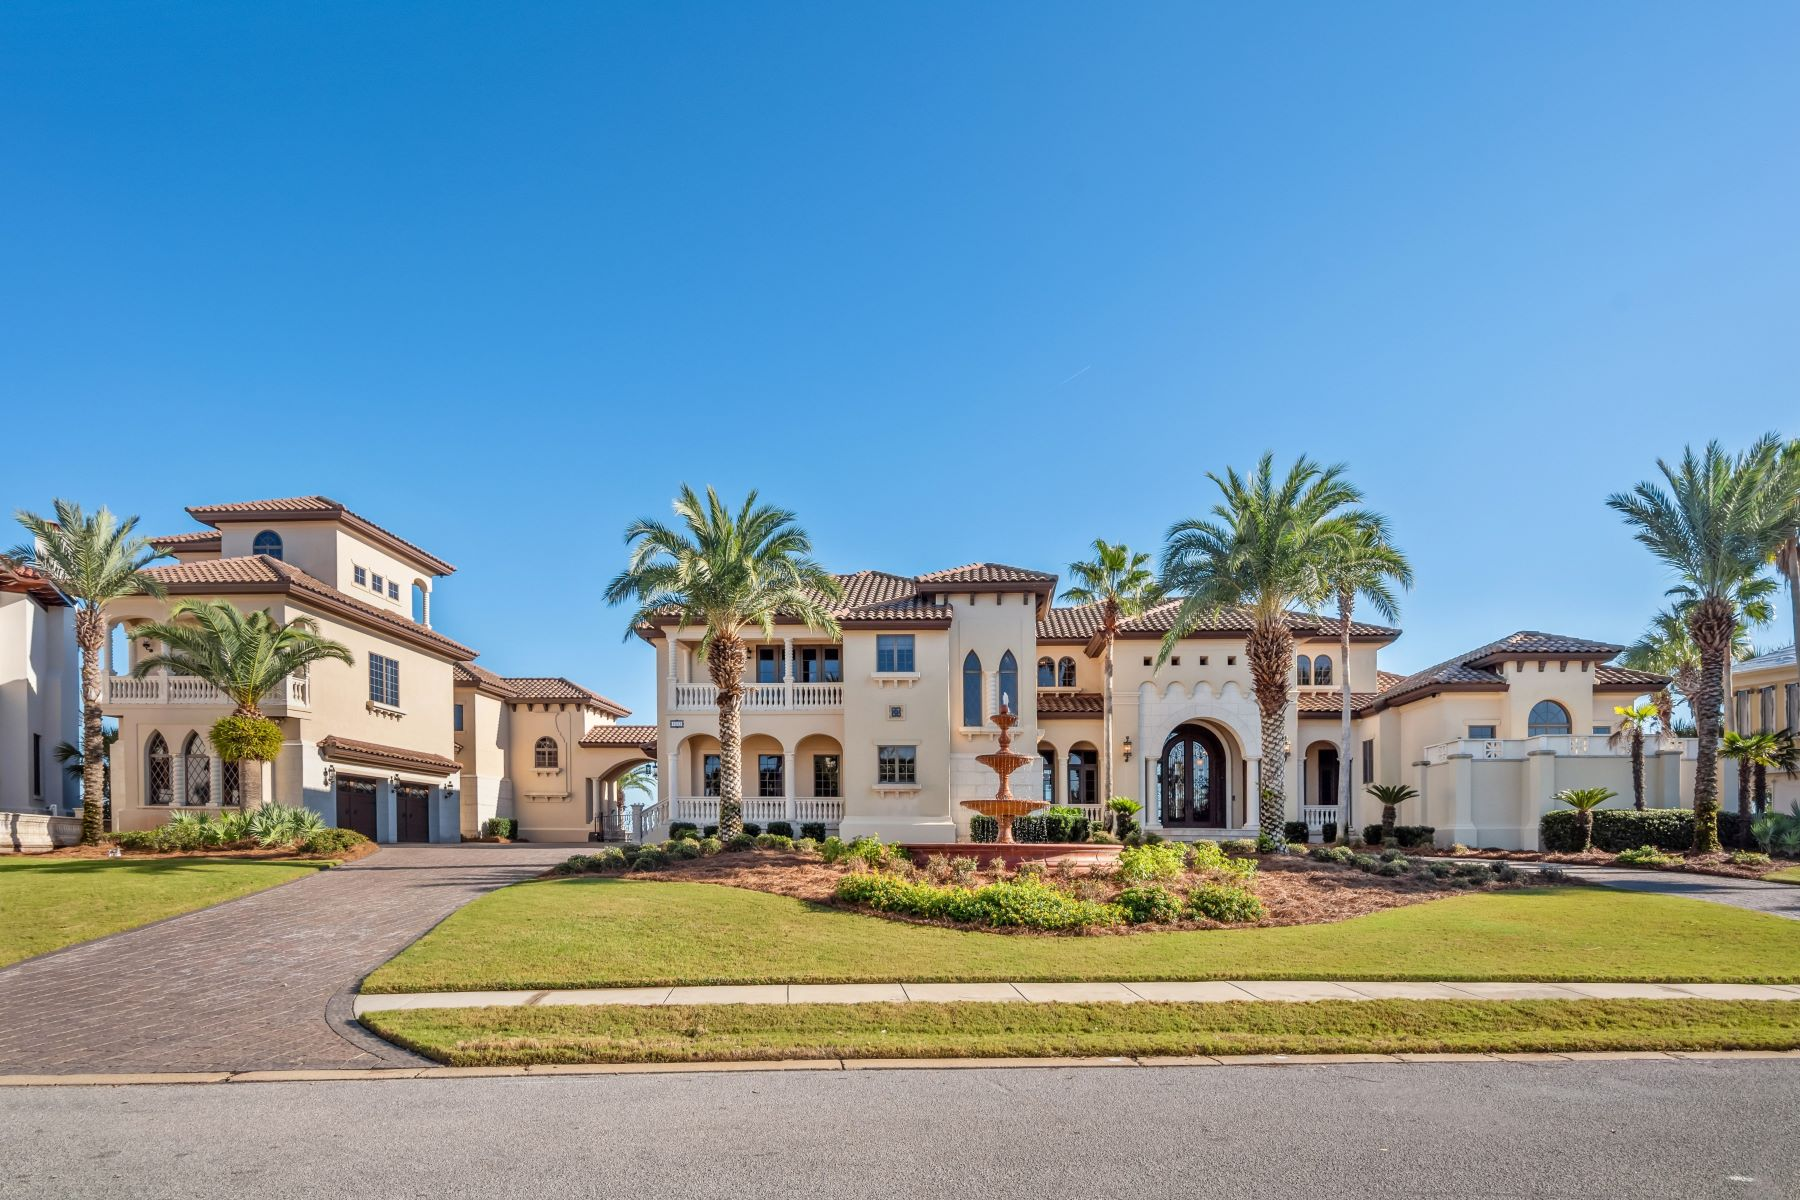 Single Family Homes for Active at Magnificent Bayfront Home on the Point with Docks and Boat Slips 5222 Finisterre Drive Panama City, Florida 32408 United States